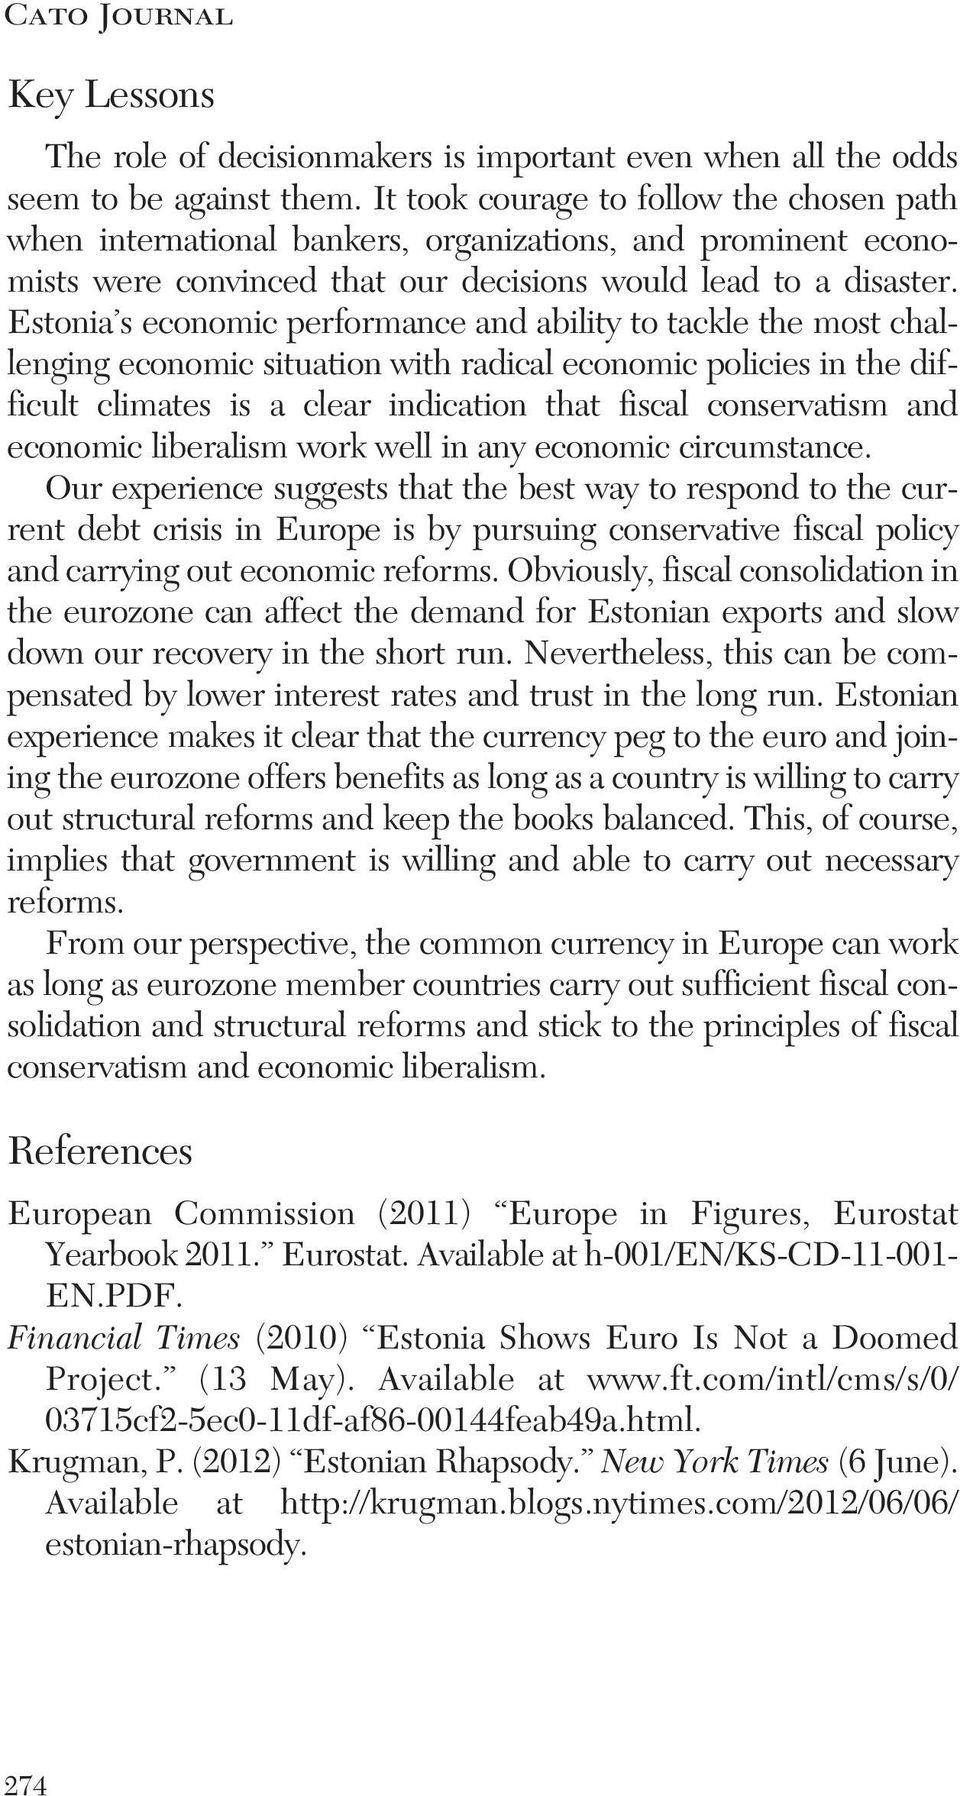 Estonia s economic performance and ability to tackle the most challenging economic situation with radical economic policies in the difficult climates is a clear indication that fiscal conservatism